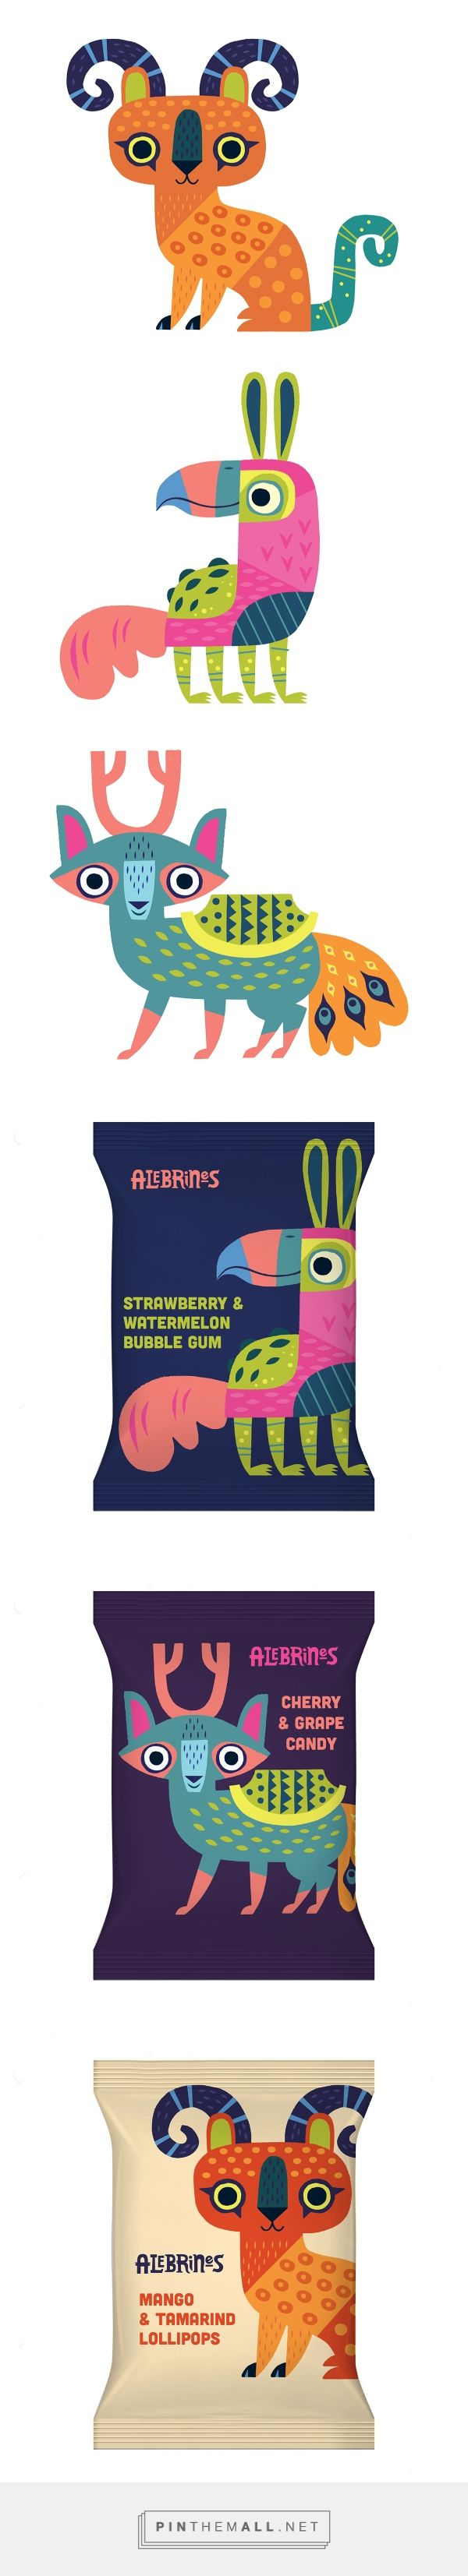 Character design, illustration and packaging for Alebrines on Behance by Alexander Vidal Los Angeles, CA curated by Packaging Diva PD. Created for a line of Mexican candies inspired by traditional Mexican folk art for the packaging smile file : )